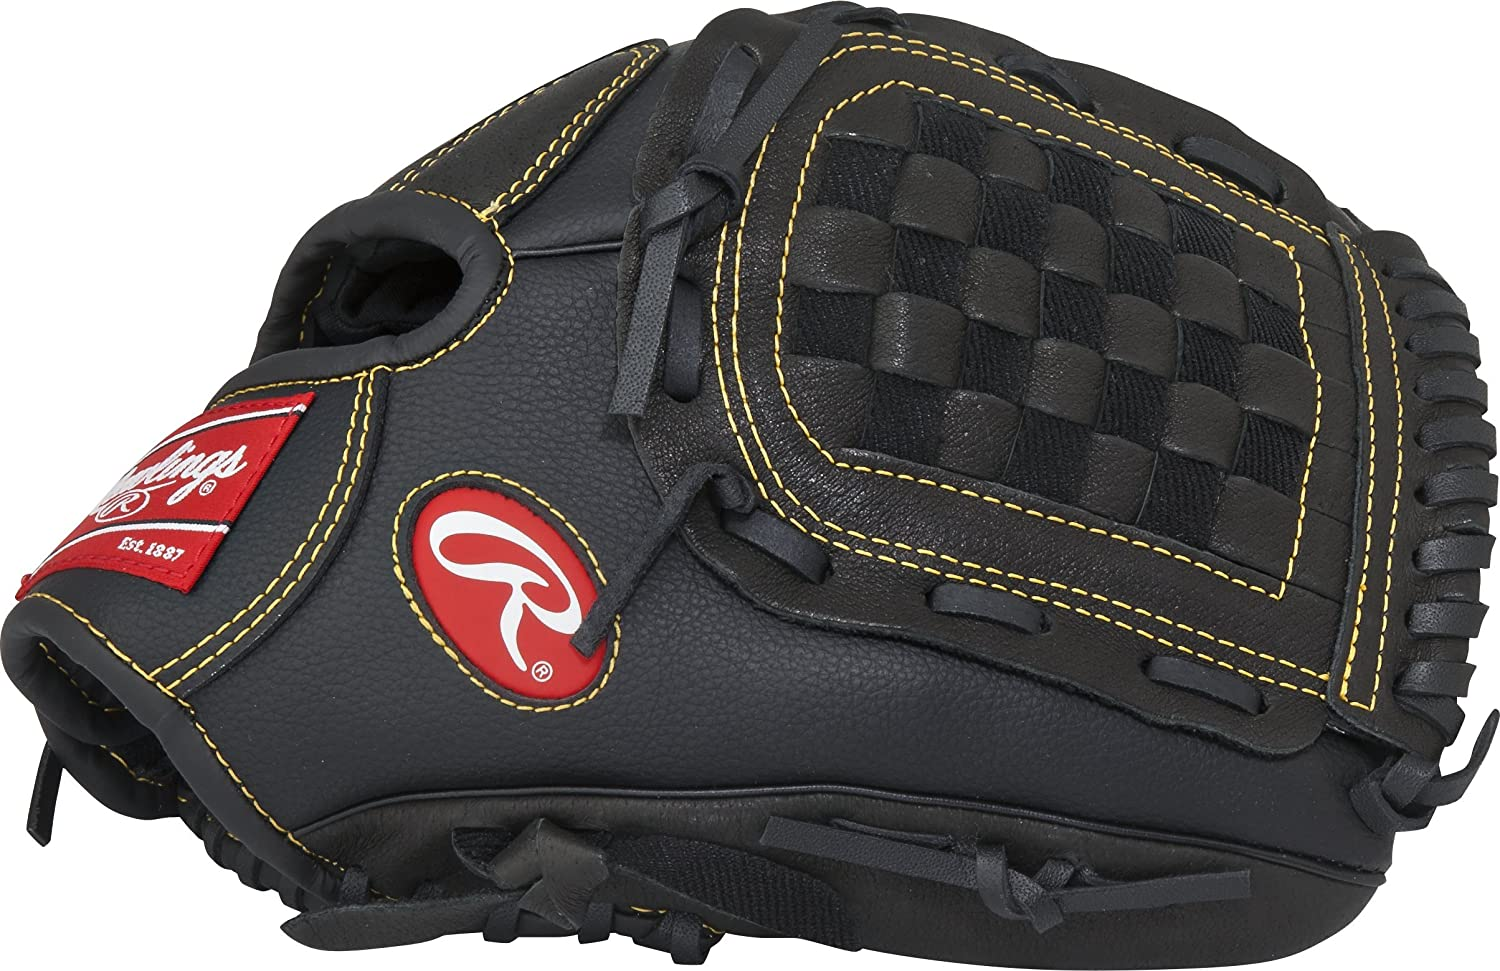 Rawlings Playmaker Series Glove, Black Rawlings Sporting Goods